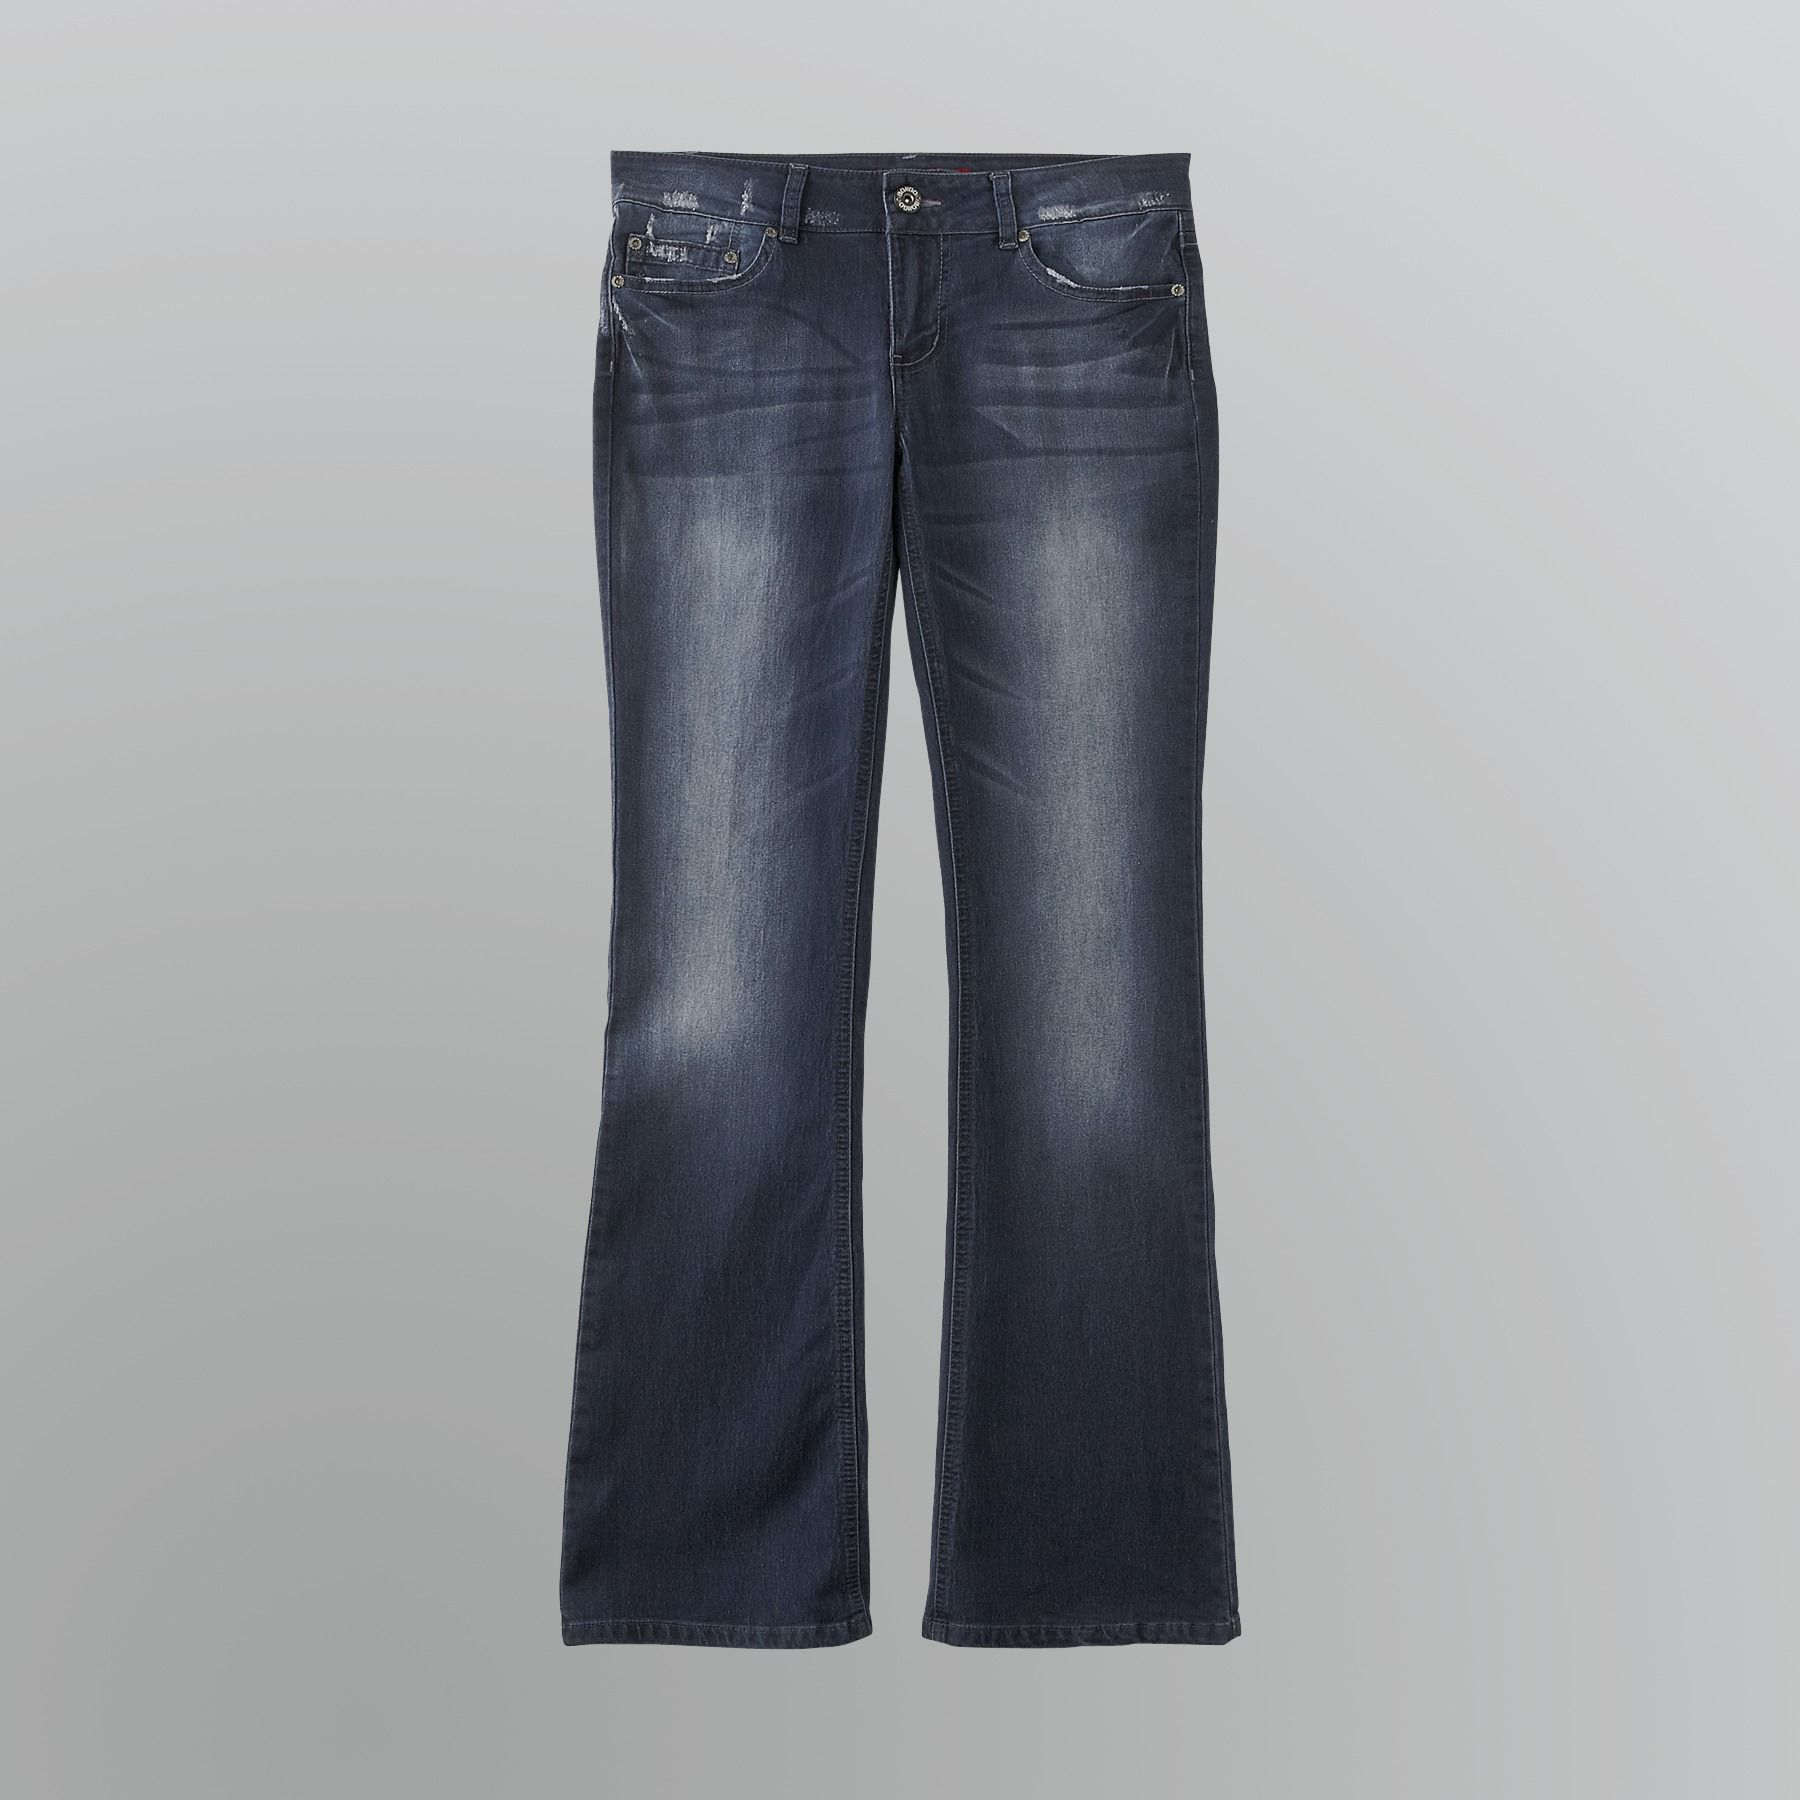 Bongo Junior's Distressed Bootcut Jeans at Sears.com